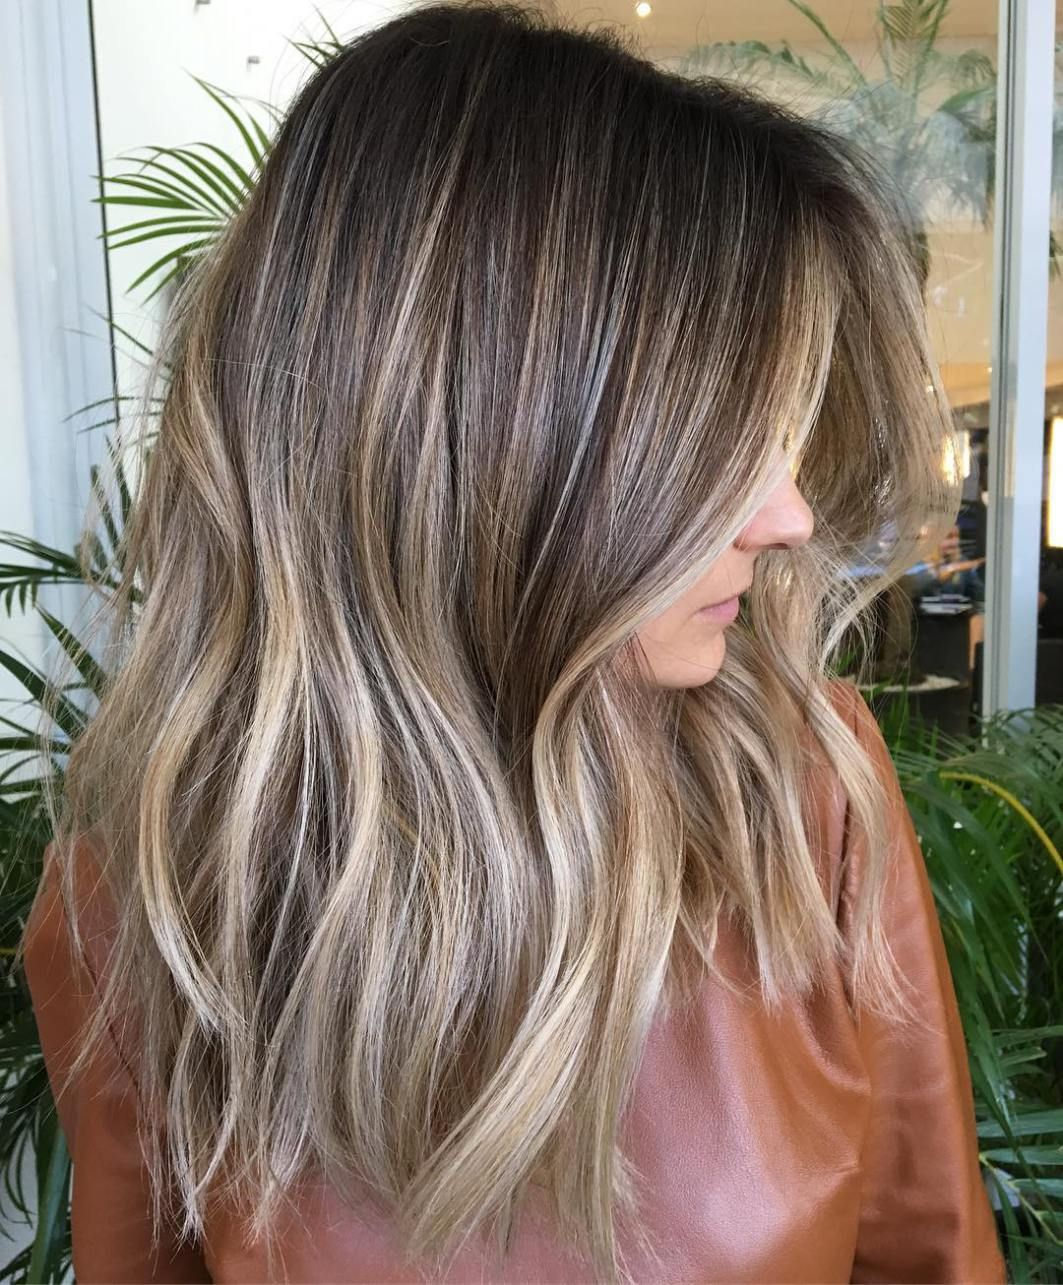 50 Ideas For Light Brown Hair With Highlights And Lowlights Brown Hair With Ash Blonde Highlights Hair Styles Brown Hair With Highlights